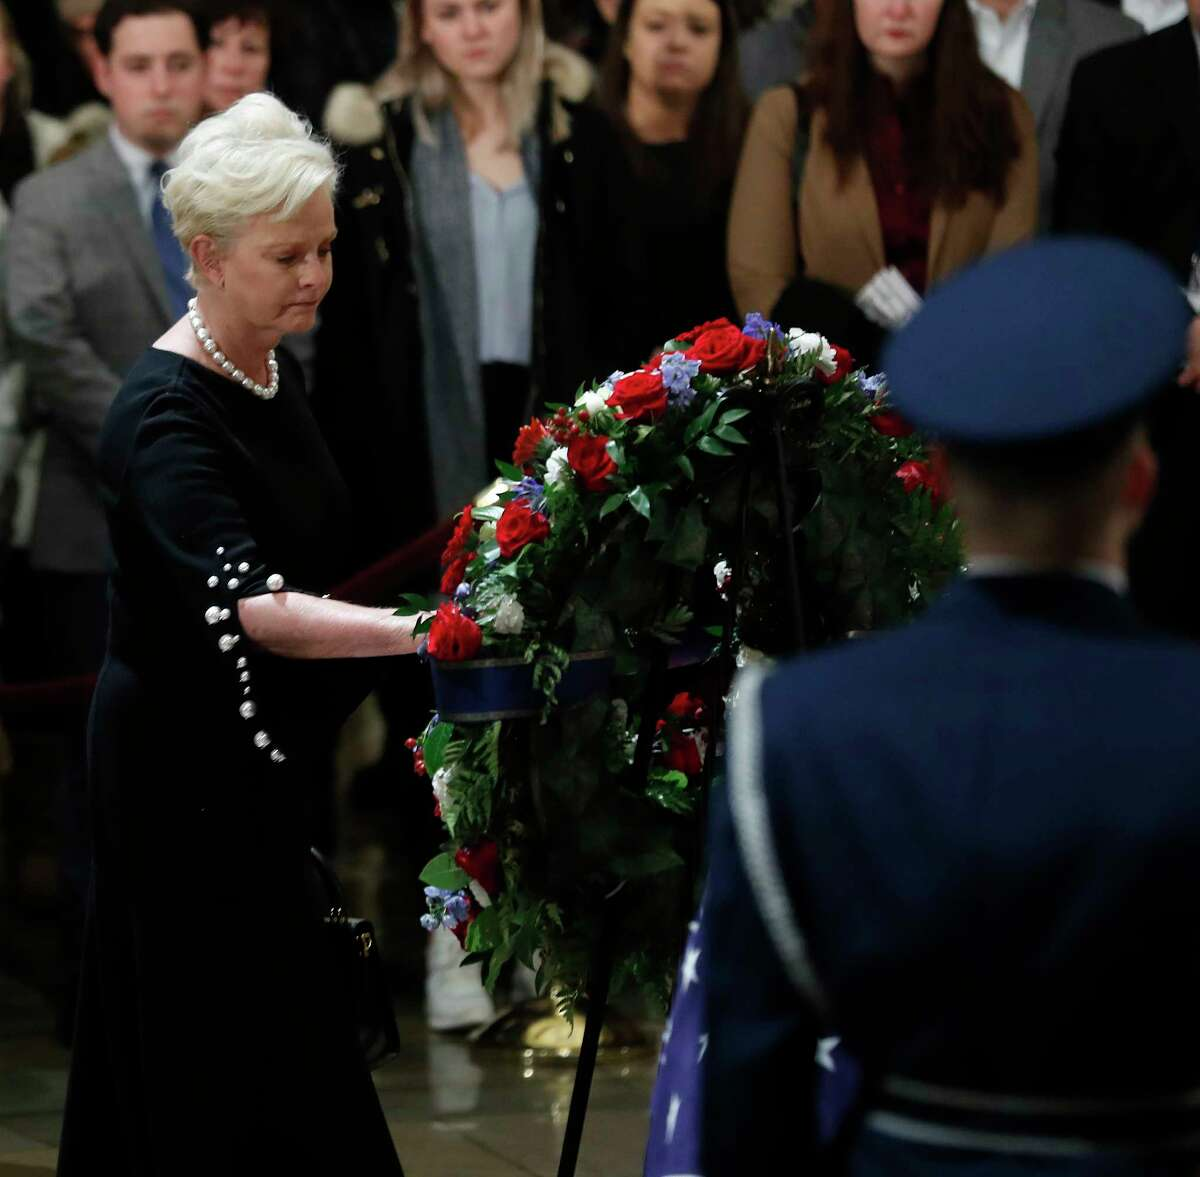 Cindy McCain, wife of John McCain places a kiss on a wreath as she paused near the casket of President George H.W. Bush while he laid in state at the United States Capitol Rotunda, Tuesday, Dec. 4, 2018, in Washington. Bush will lie in state in the Rotunda until Wednesday morning.